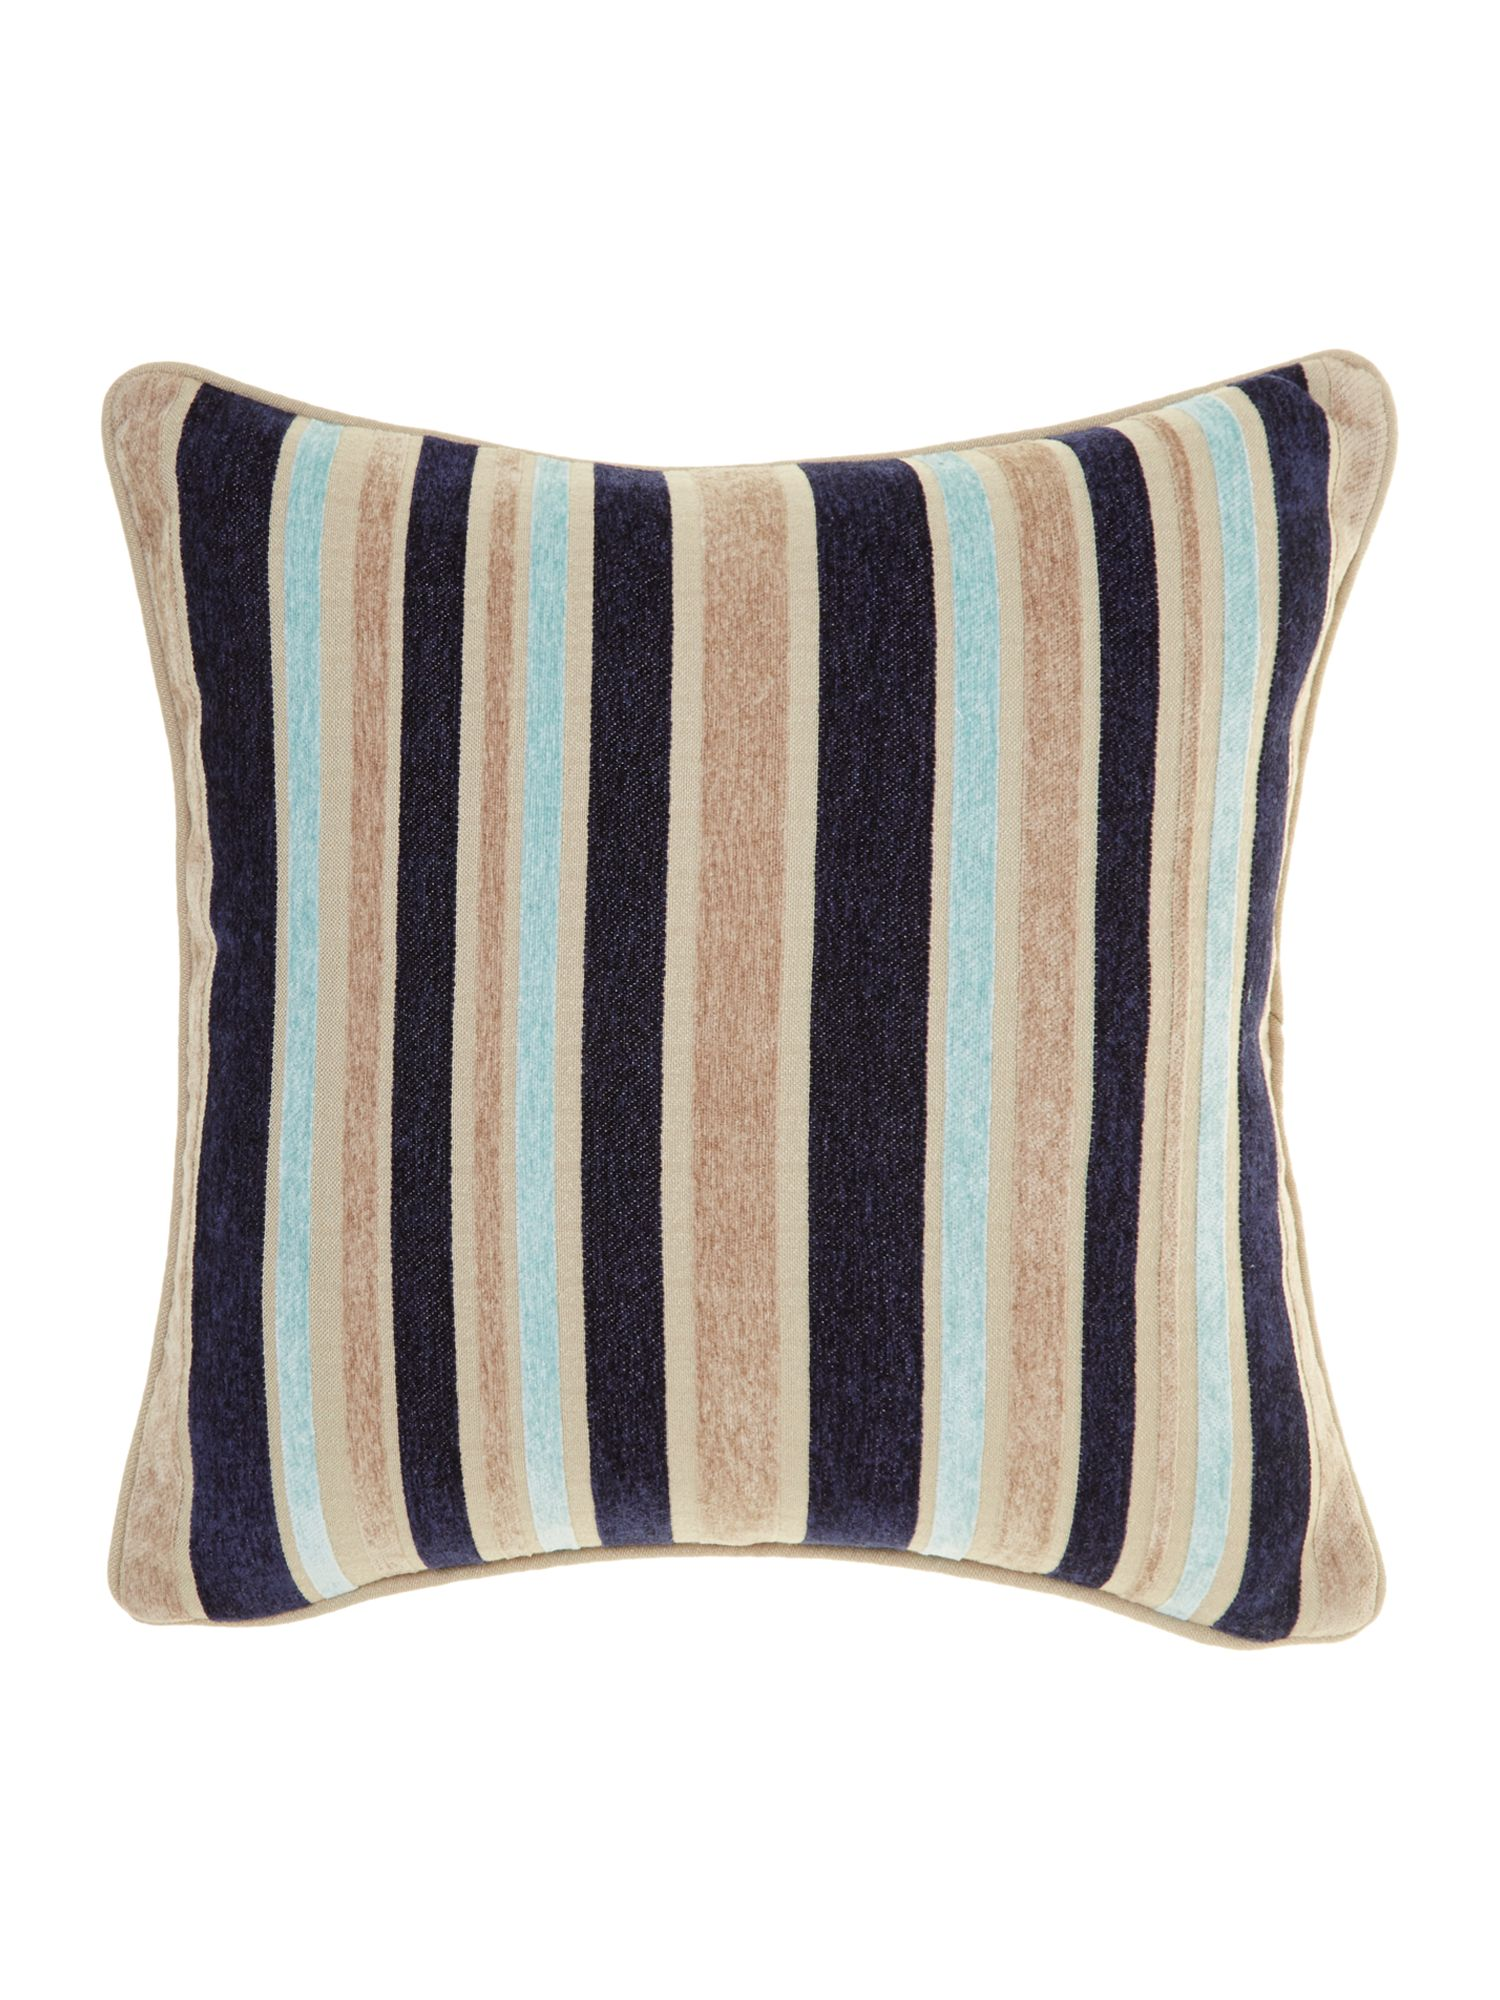 Stripe chenille cushion, Navy blue